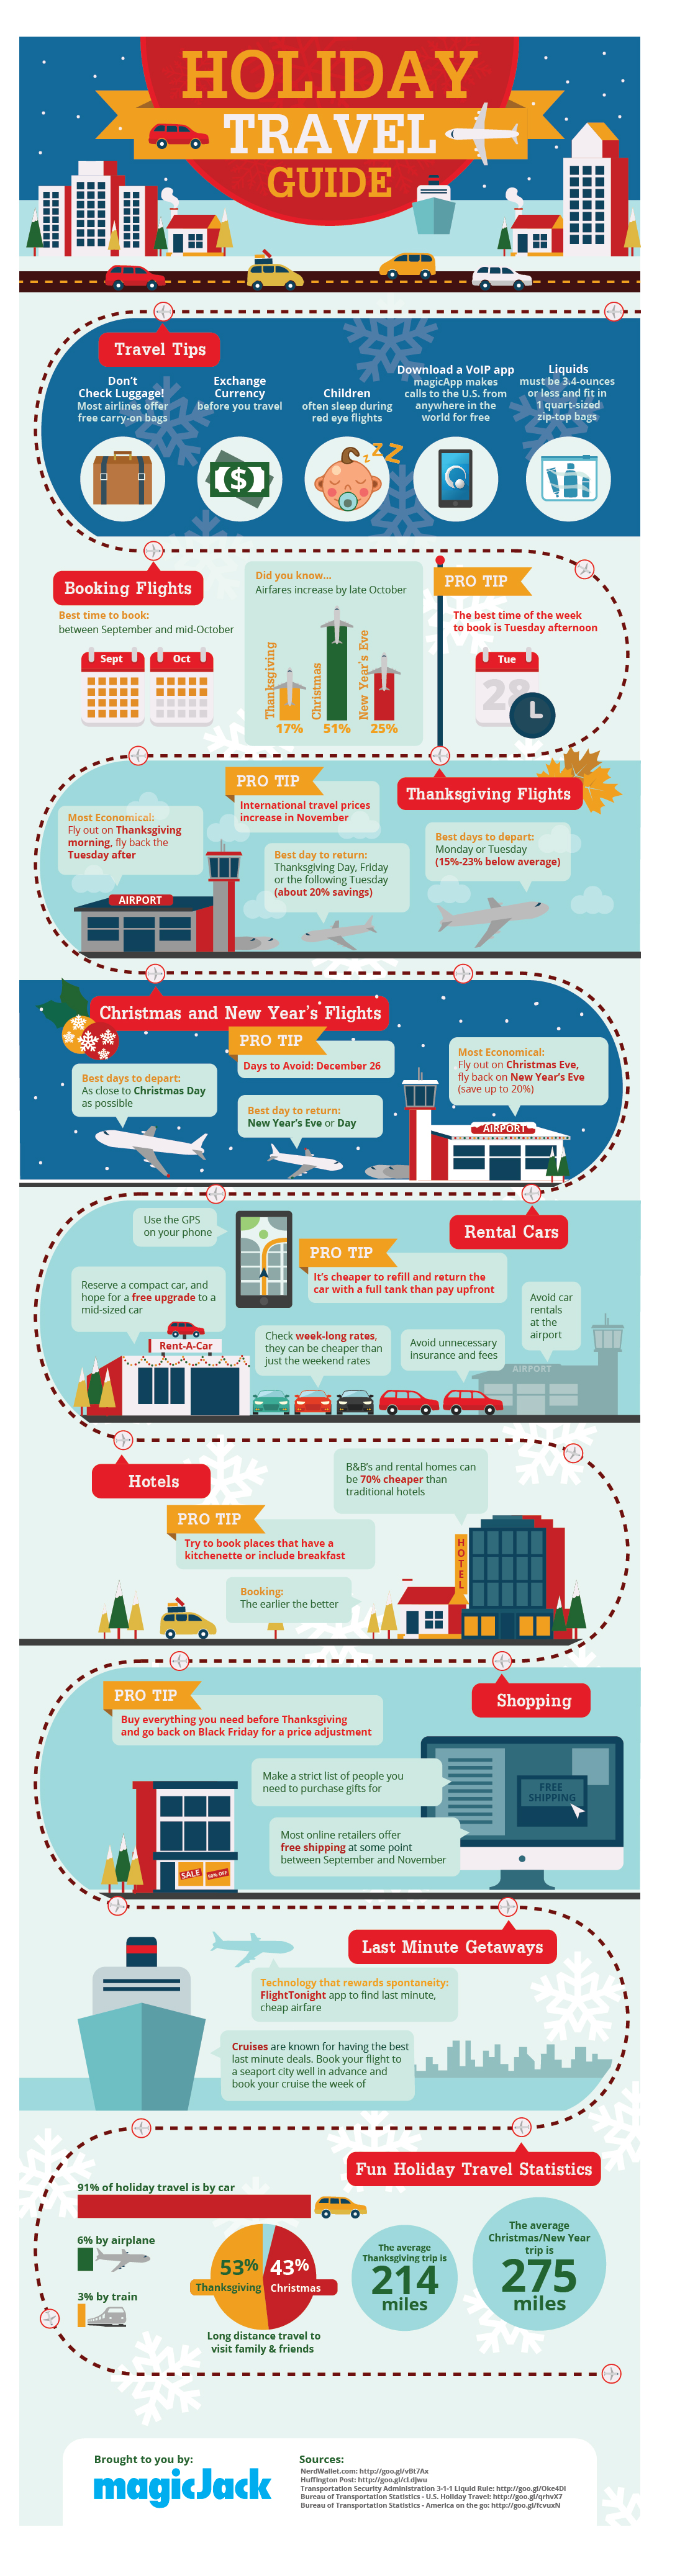 Holiday Travel Guide – Travel & Holiday Stats Infographic